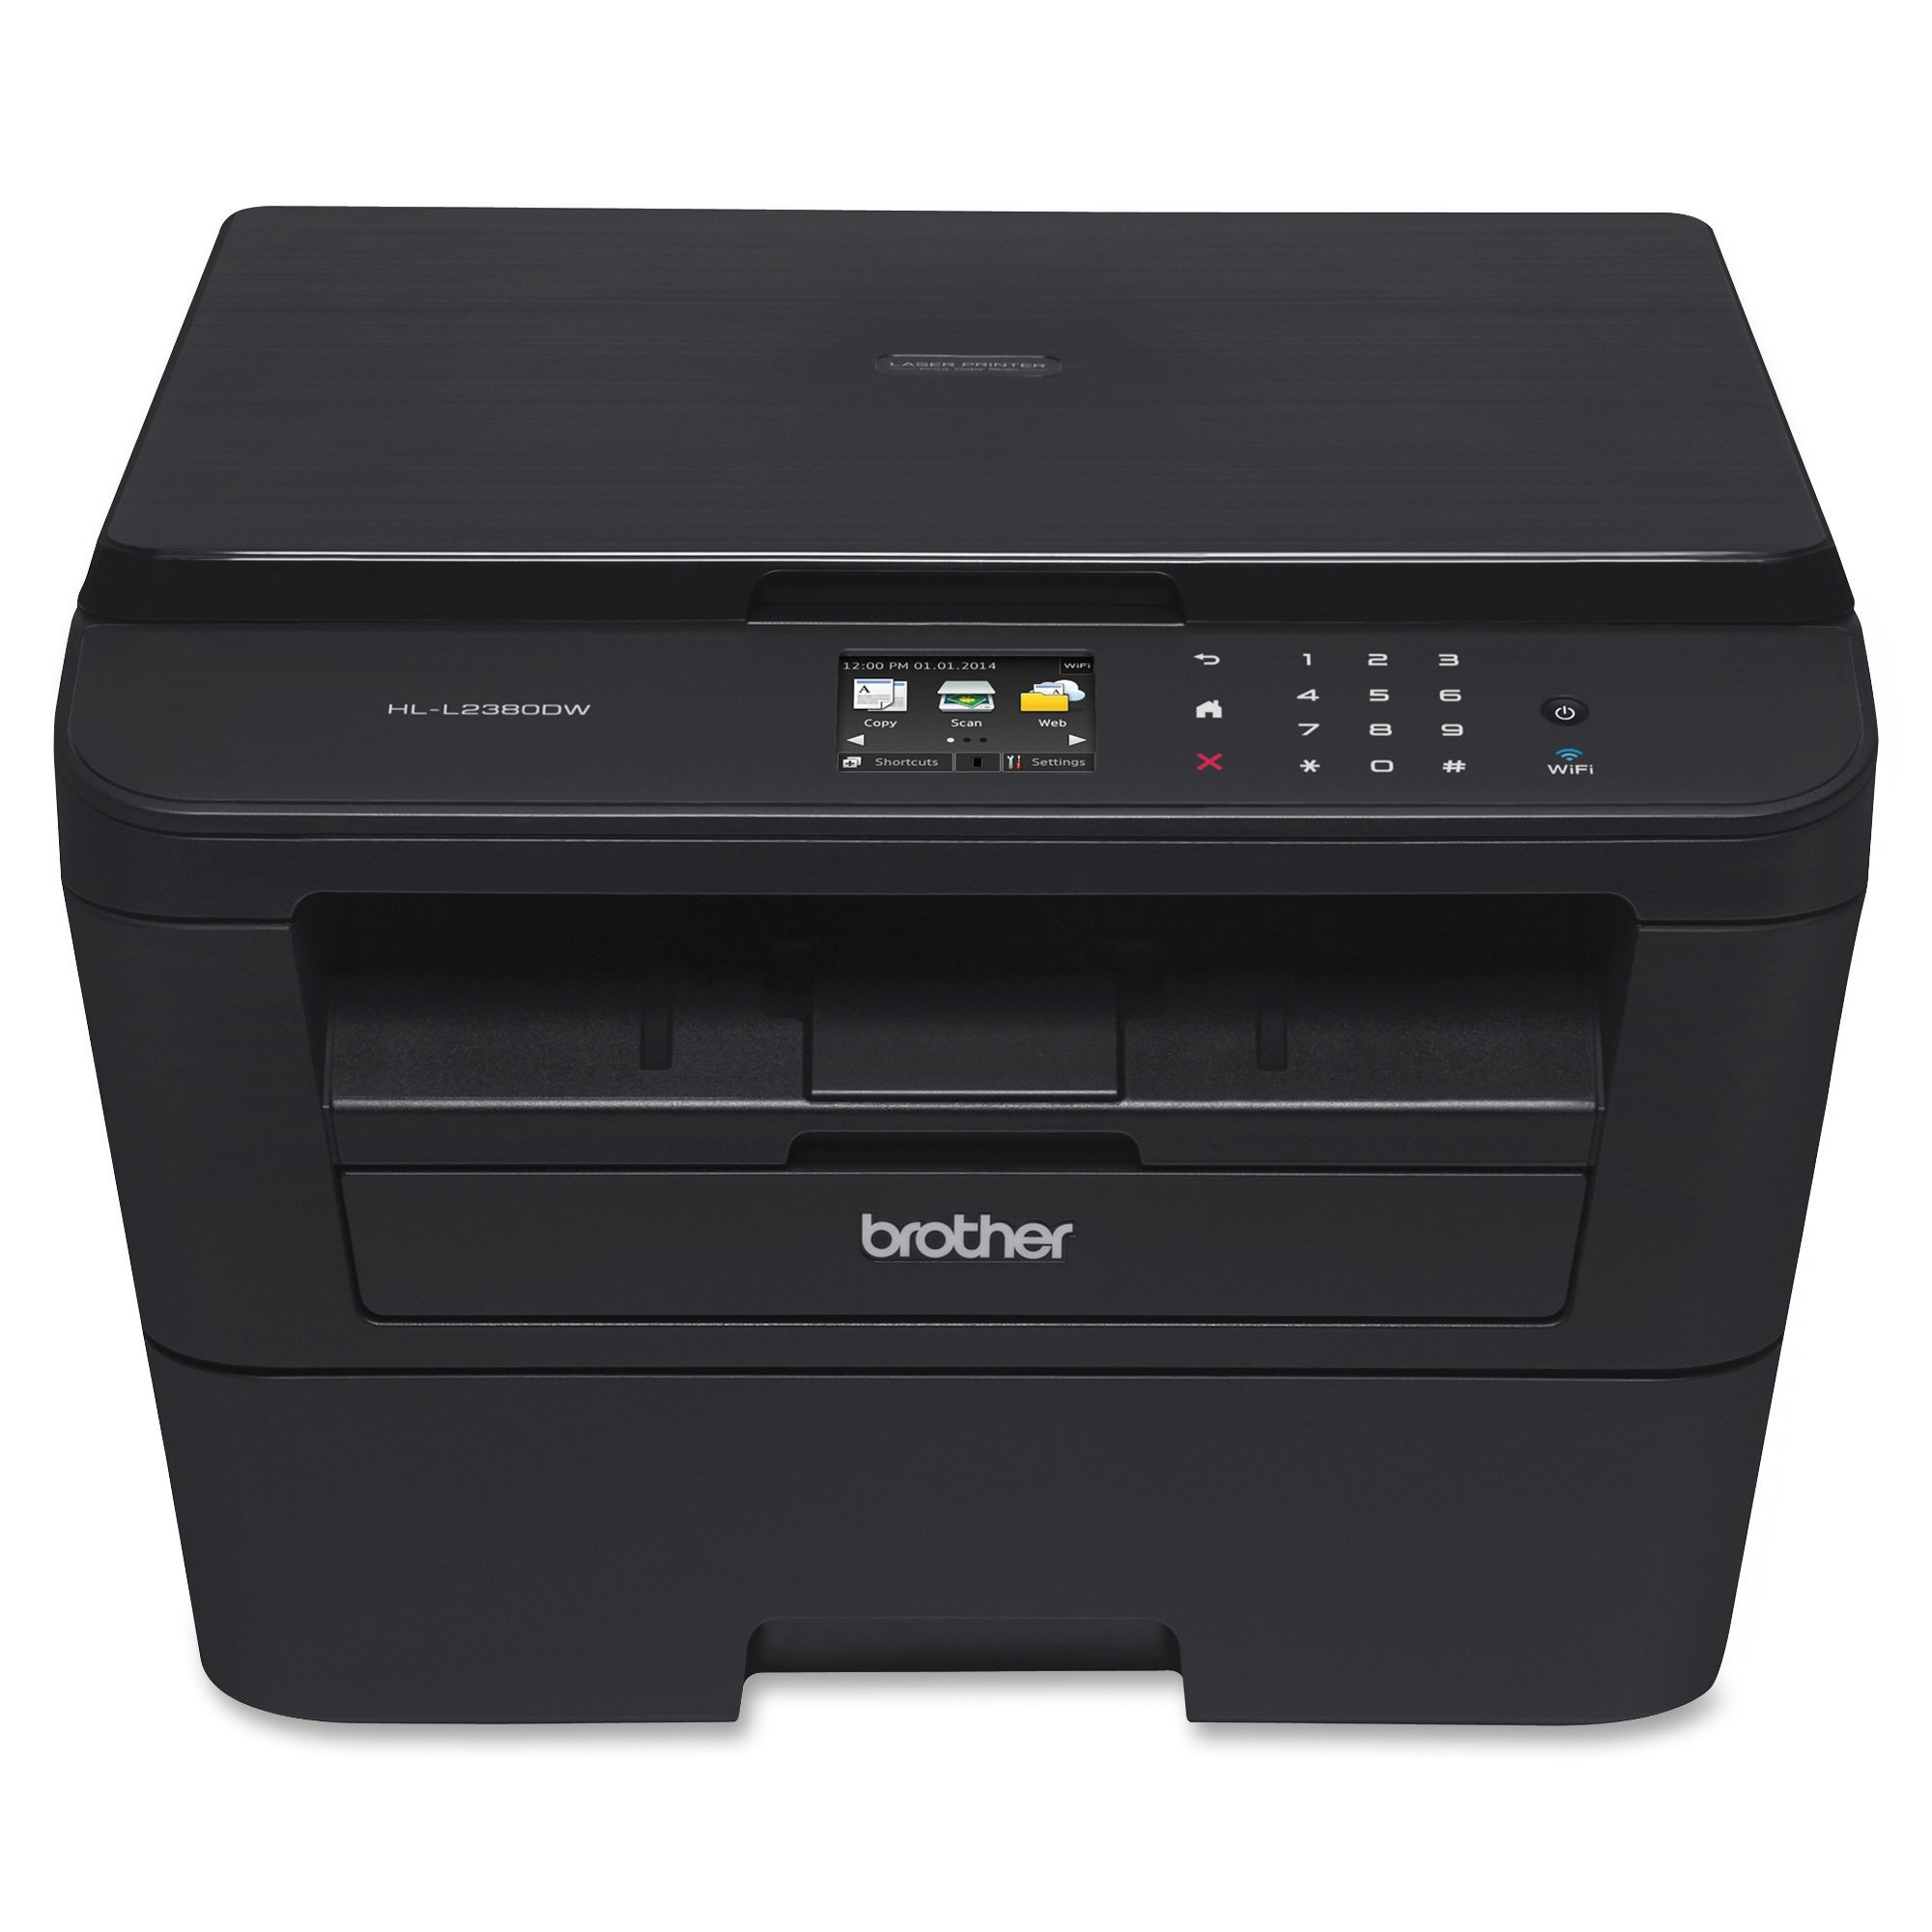 Brother HL-L2380DW Wireless Monochrome Laser Printer, Amazon Dash Replenishment Enabled by Brother